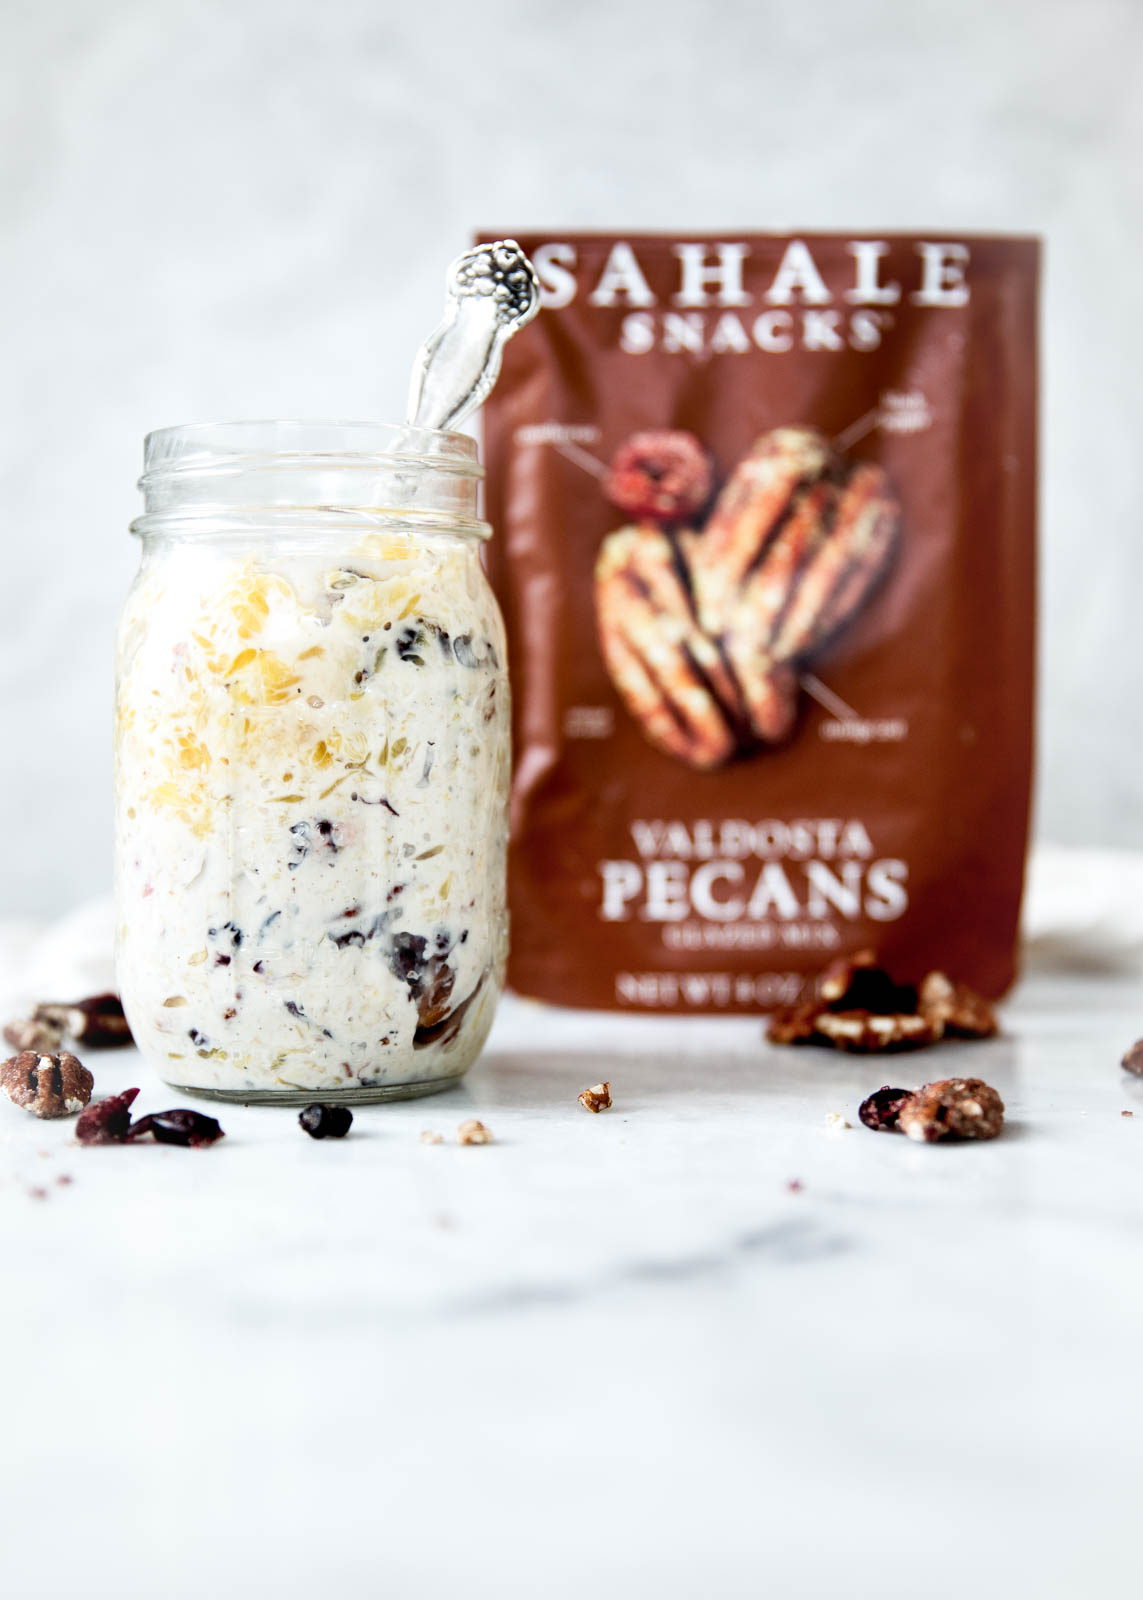 Overnight oats are a simple and nutritious breakfast all year round. This version, with dried cranberries, orange, and Valdosta pecans, is insanely delicious!